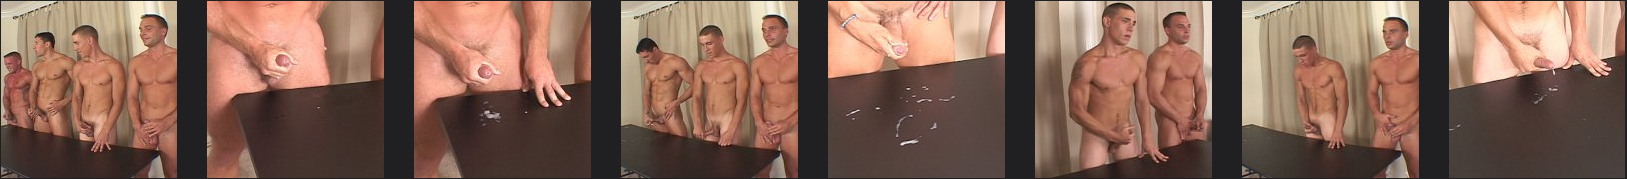 5 jocks jerking off and shooting cum together